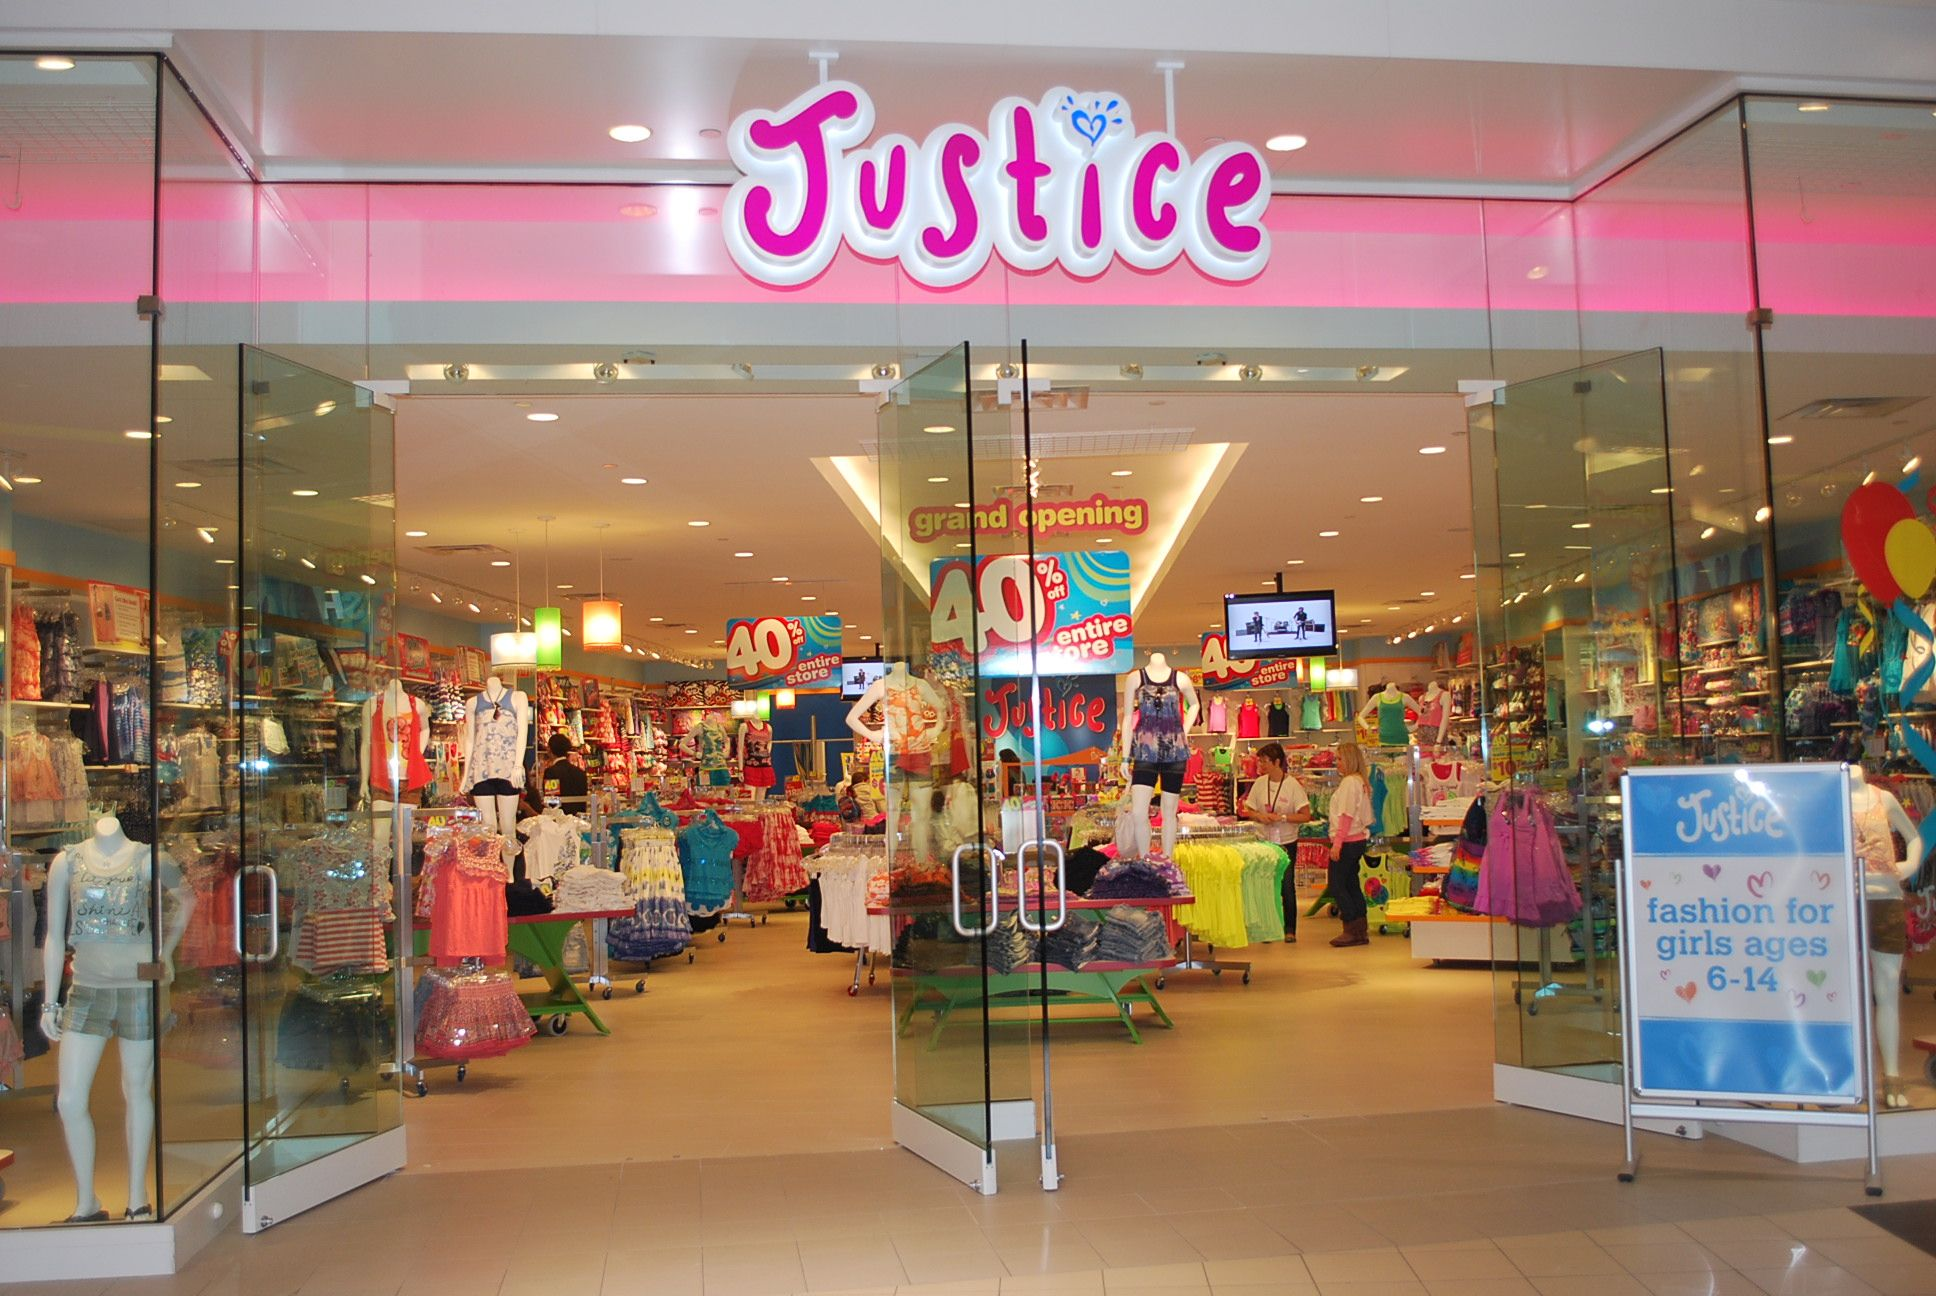 Shop Justice Justice is part of Tween Brands, Inc., which also carries the brand Brothers, specializing in clothing and accessories for tweens, 7 to